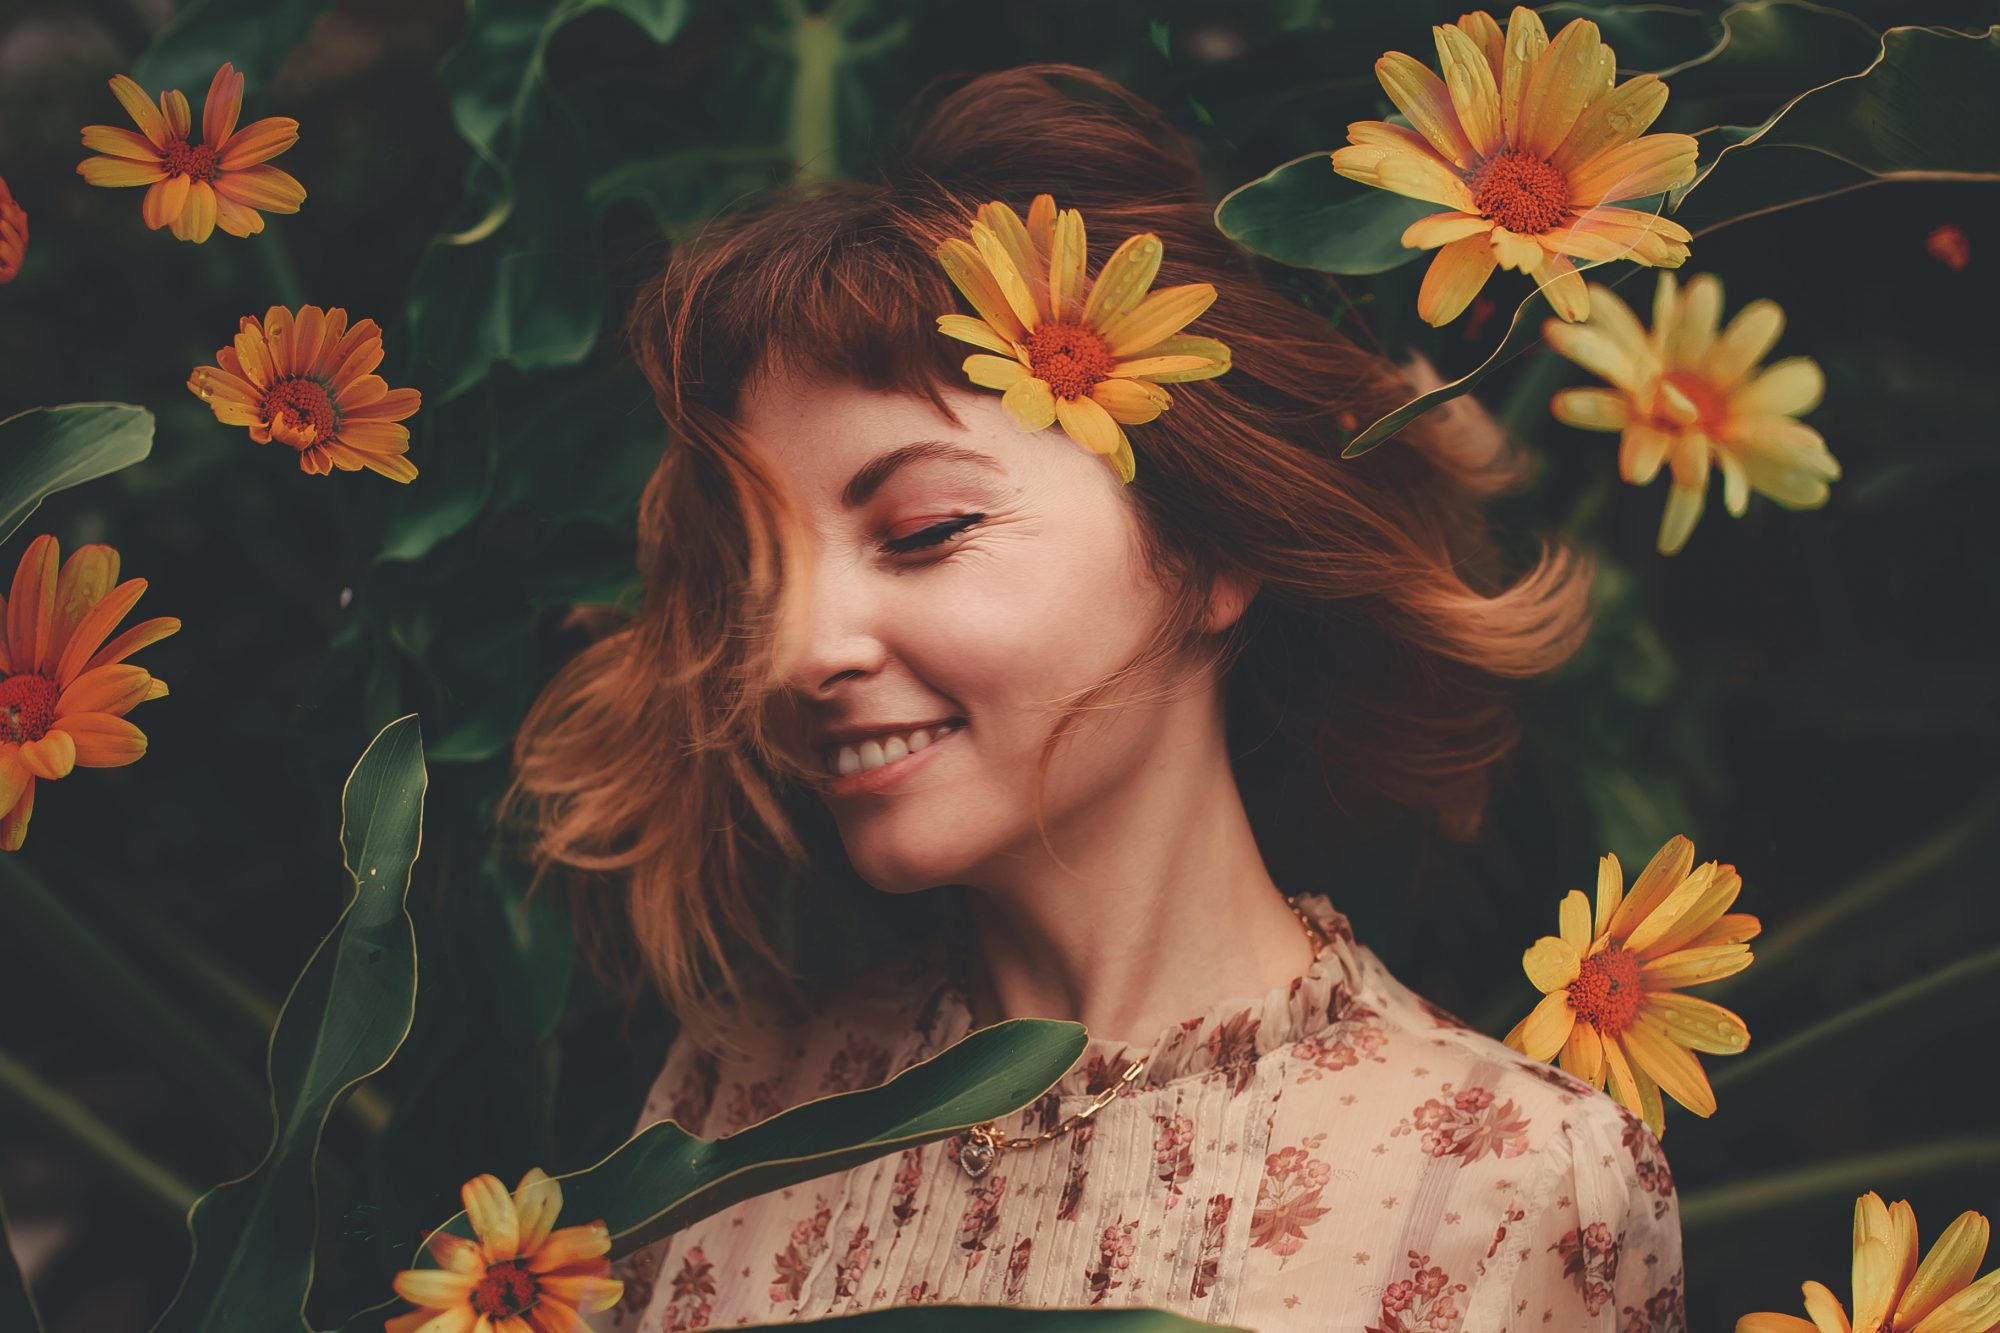 dye your hair with flowers - natural hair dye